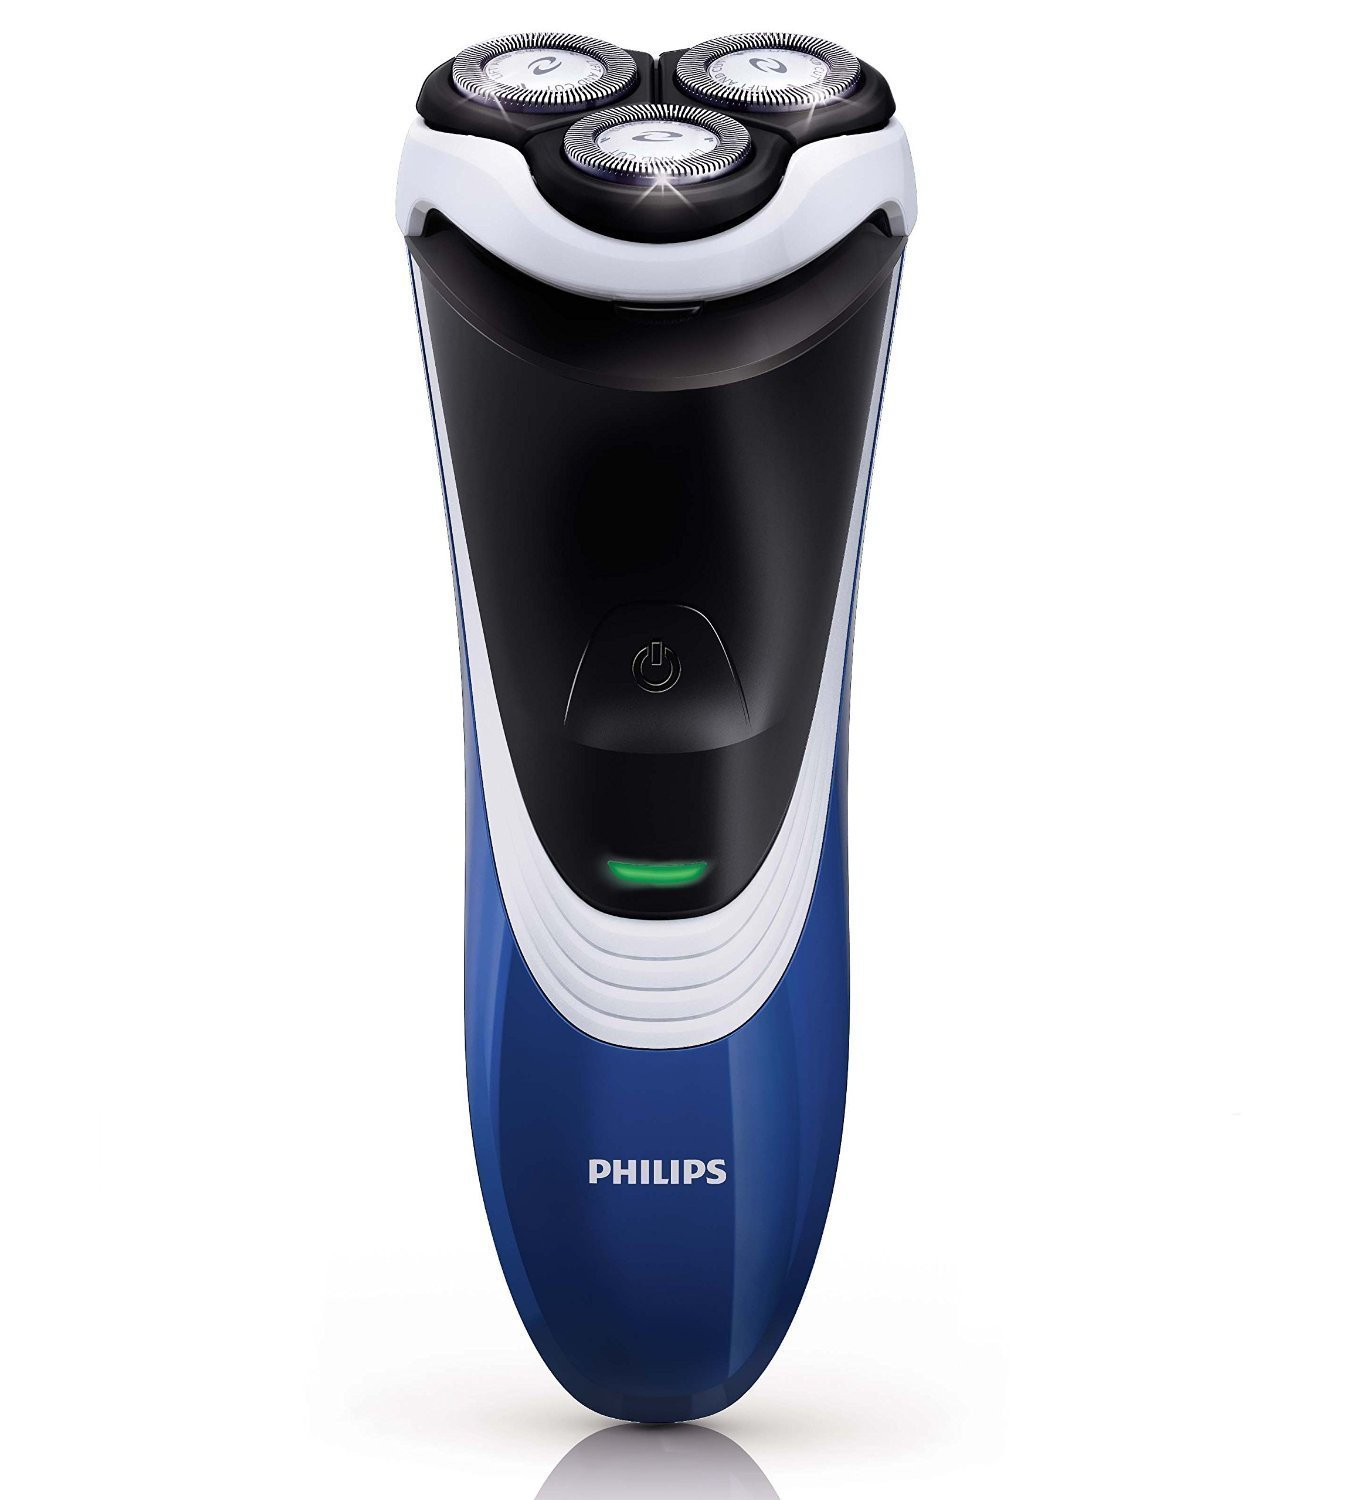 Philips Norelco Gentle Lithium-ion Electric Shaver & Beard Trimmer with Comfort Rings & Gentle Precision Blades For Sensitive Skin